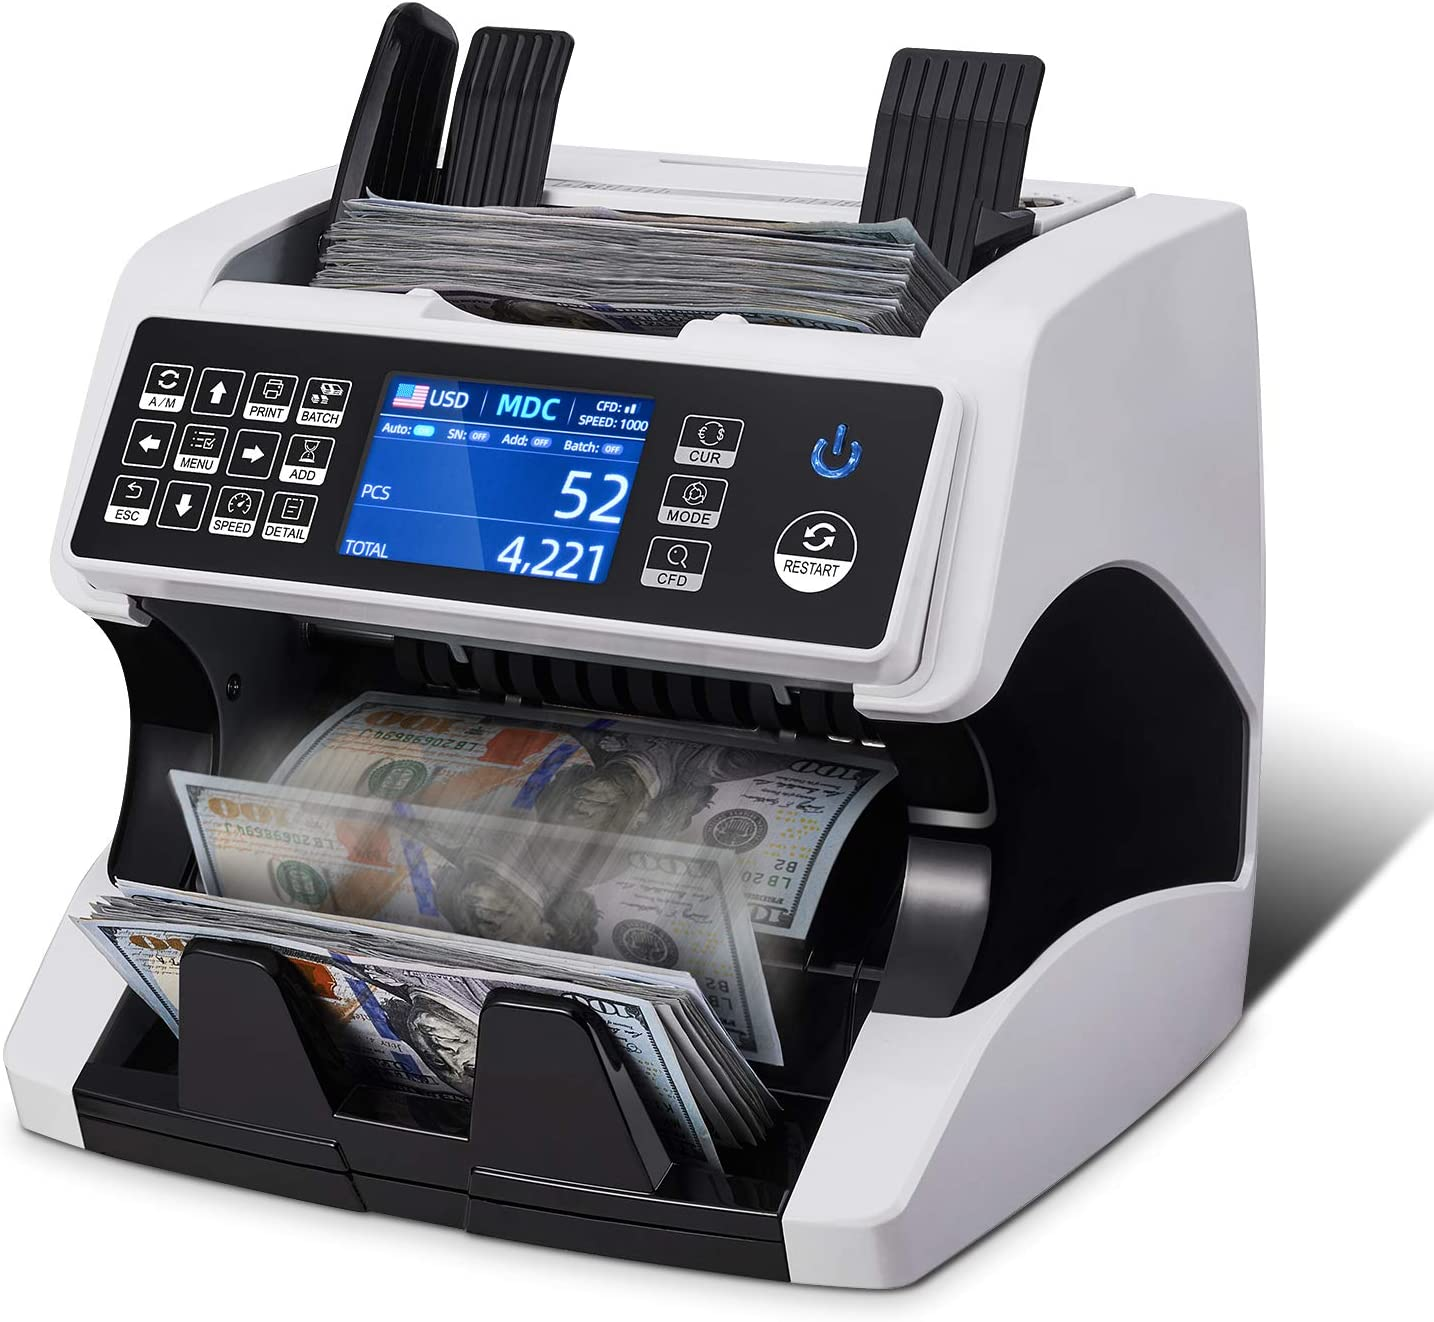 MUNBYN Bank Grade Money Counter Machine Mixed Denomination, Value Counting, Serial Number, Multi Currency, PC/Printer Enabled 11 Counterfeit Detection Cash Counter Machine with Bill Recognizes : Office Products